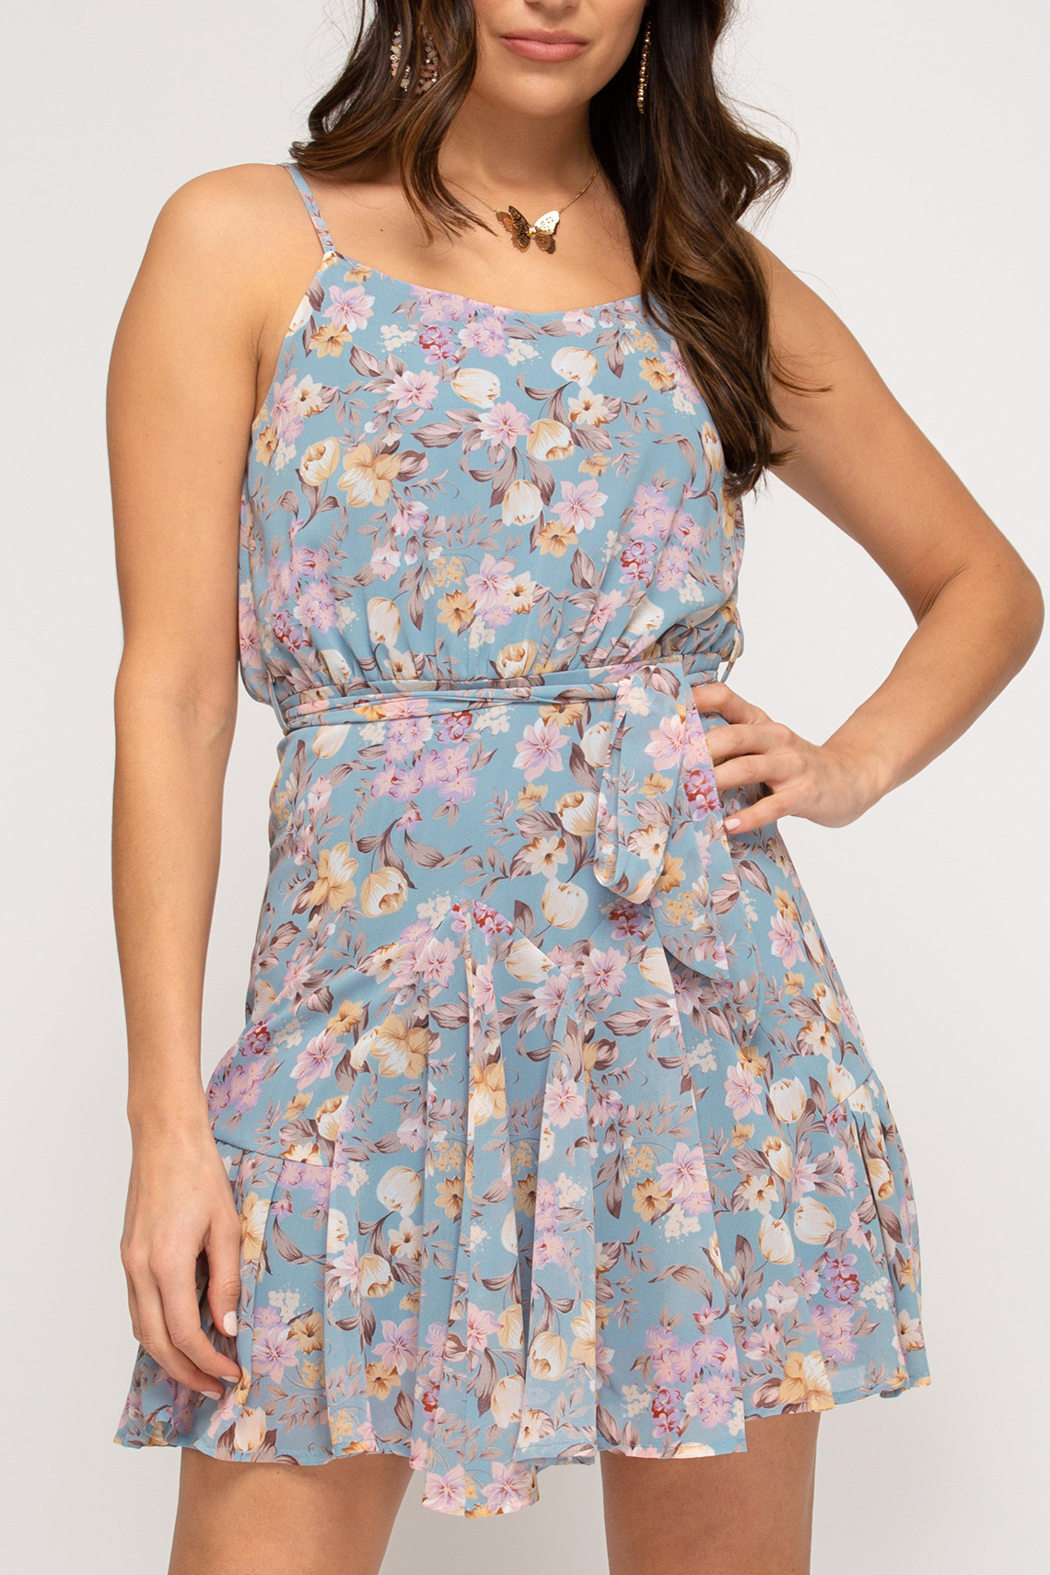 She and Sky Feeling Flirty in Floral dress - Main Image